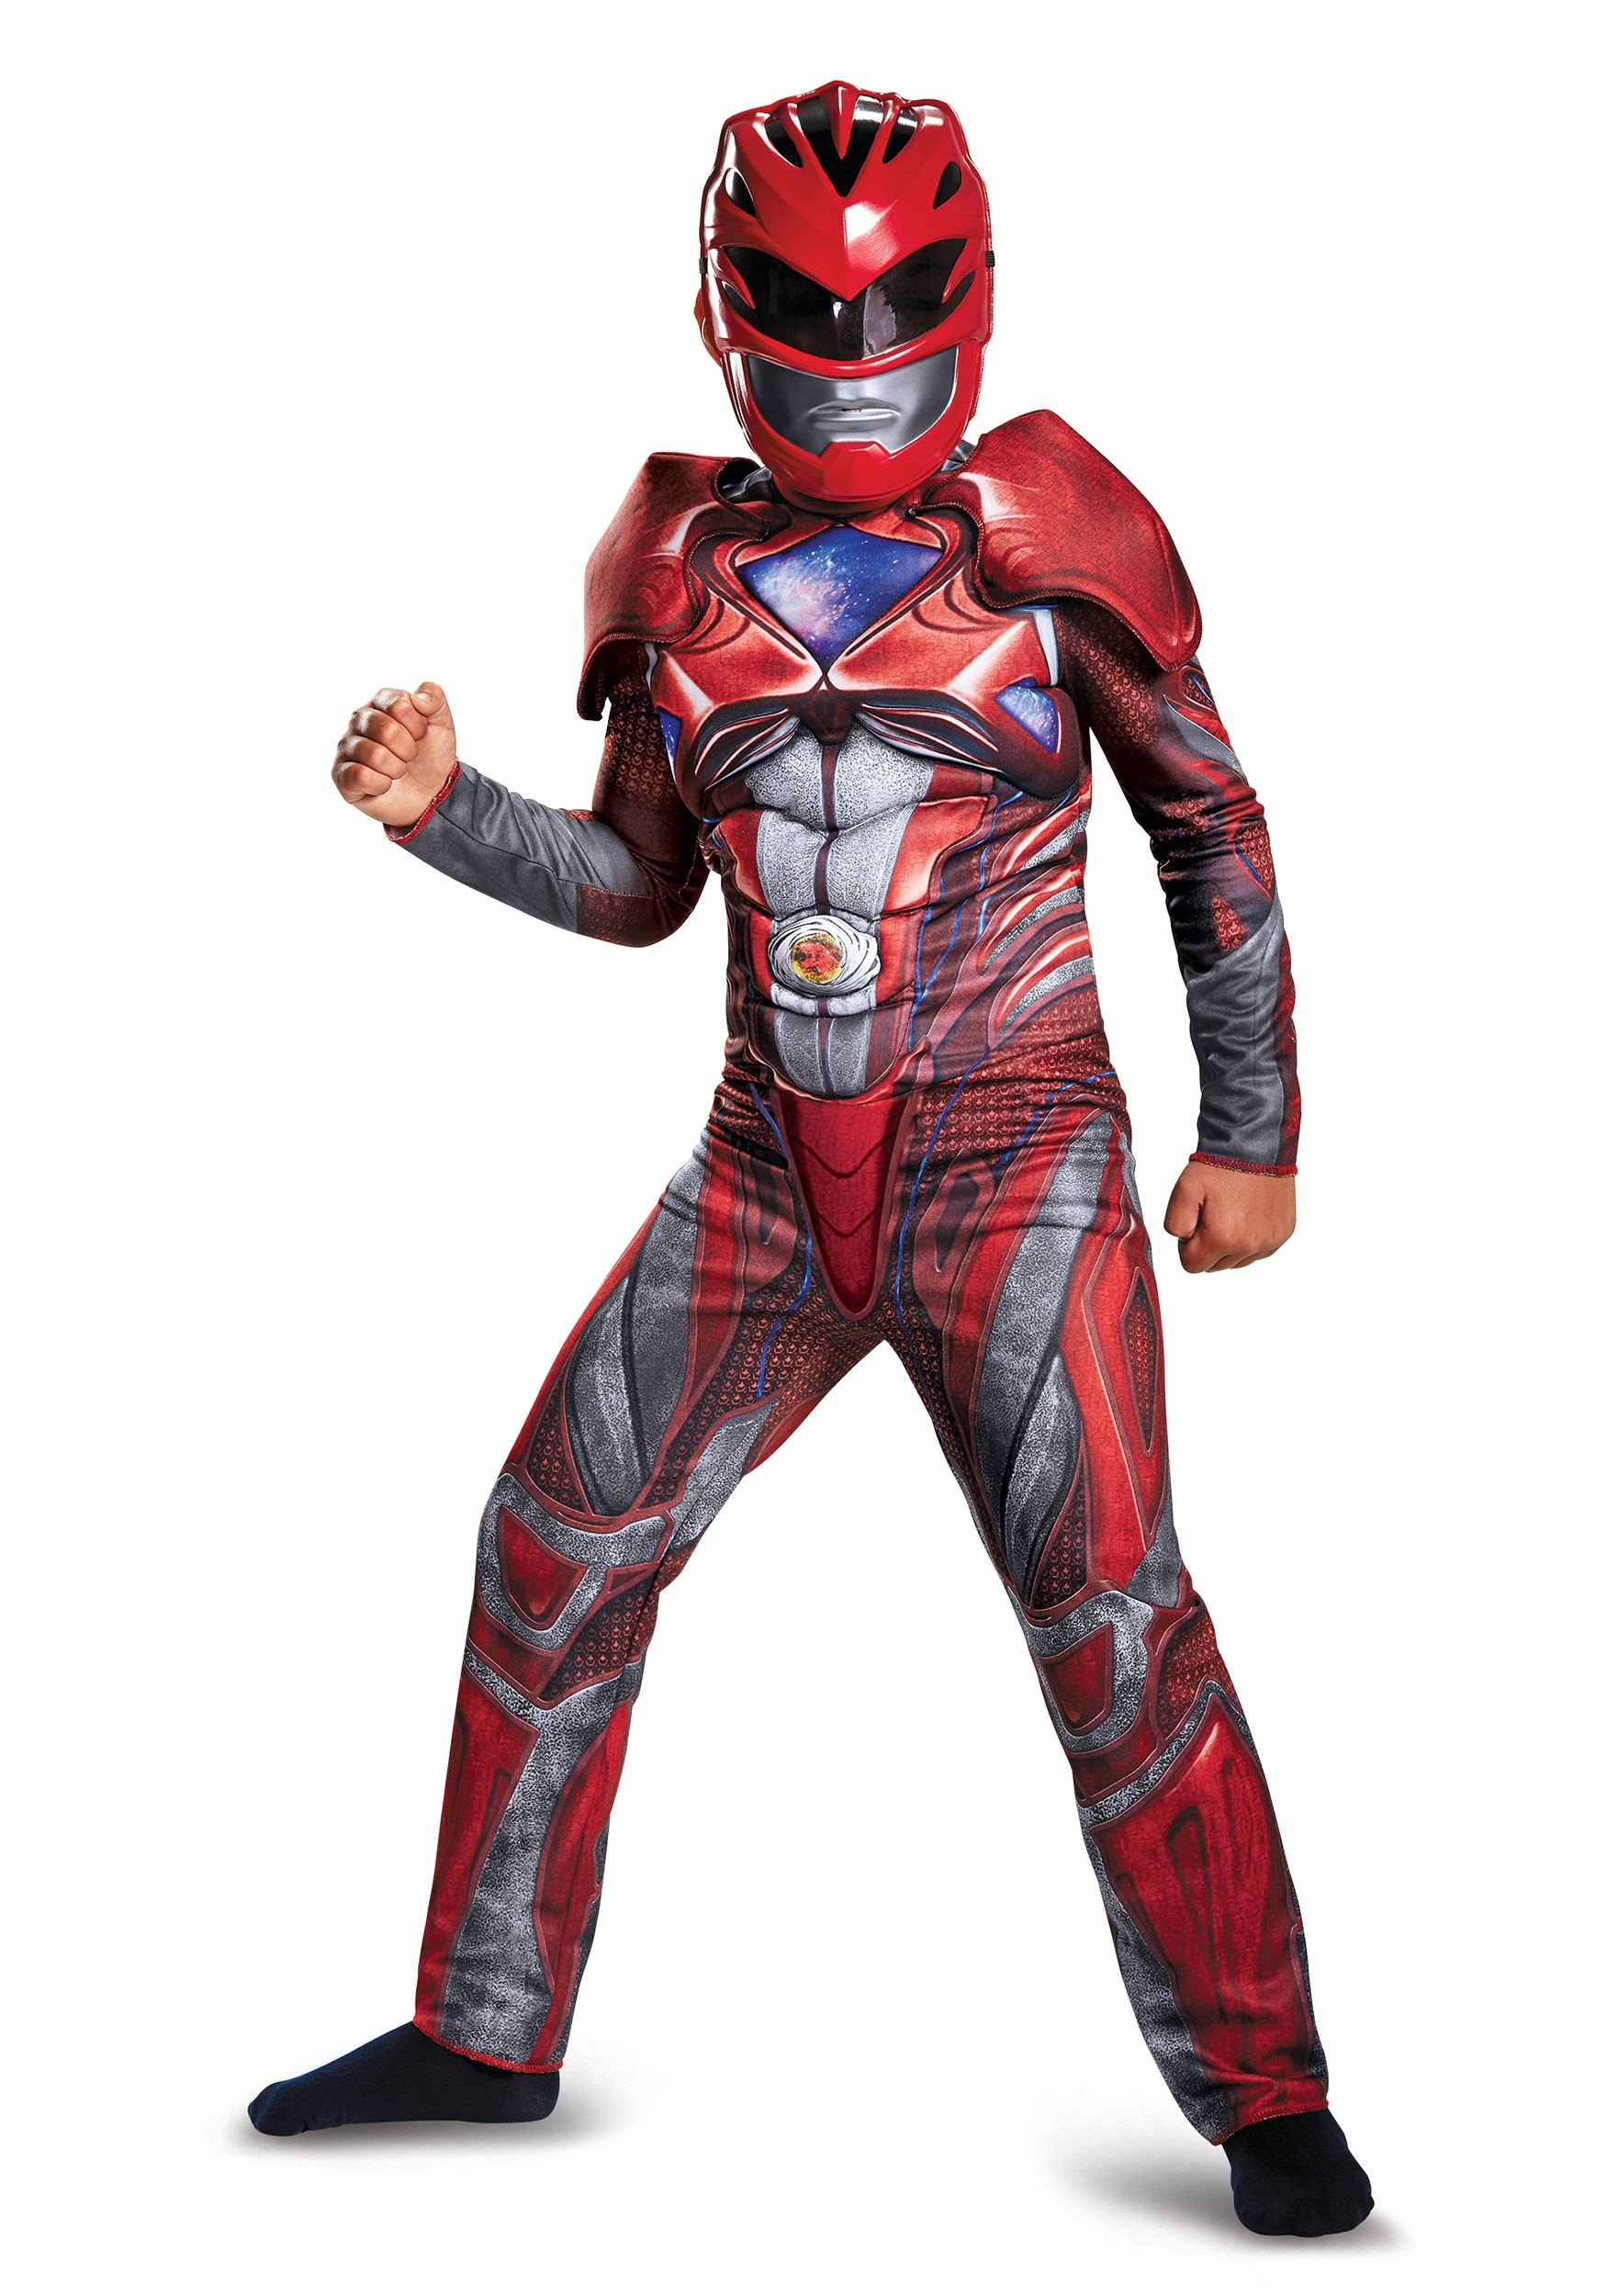 Red Ranger Child Classic Muscle Costume from the Power Rangers Movie